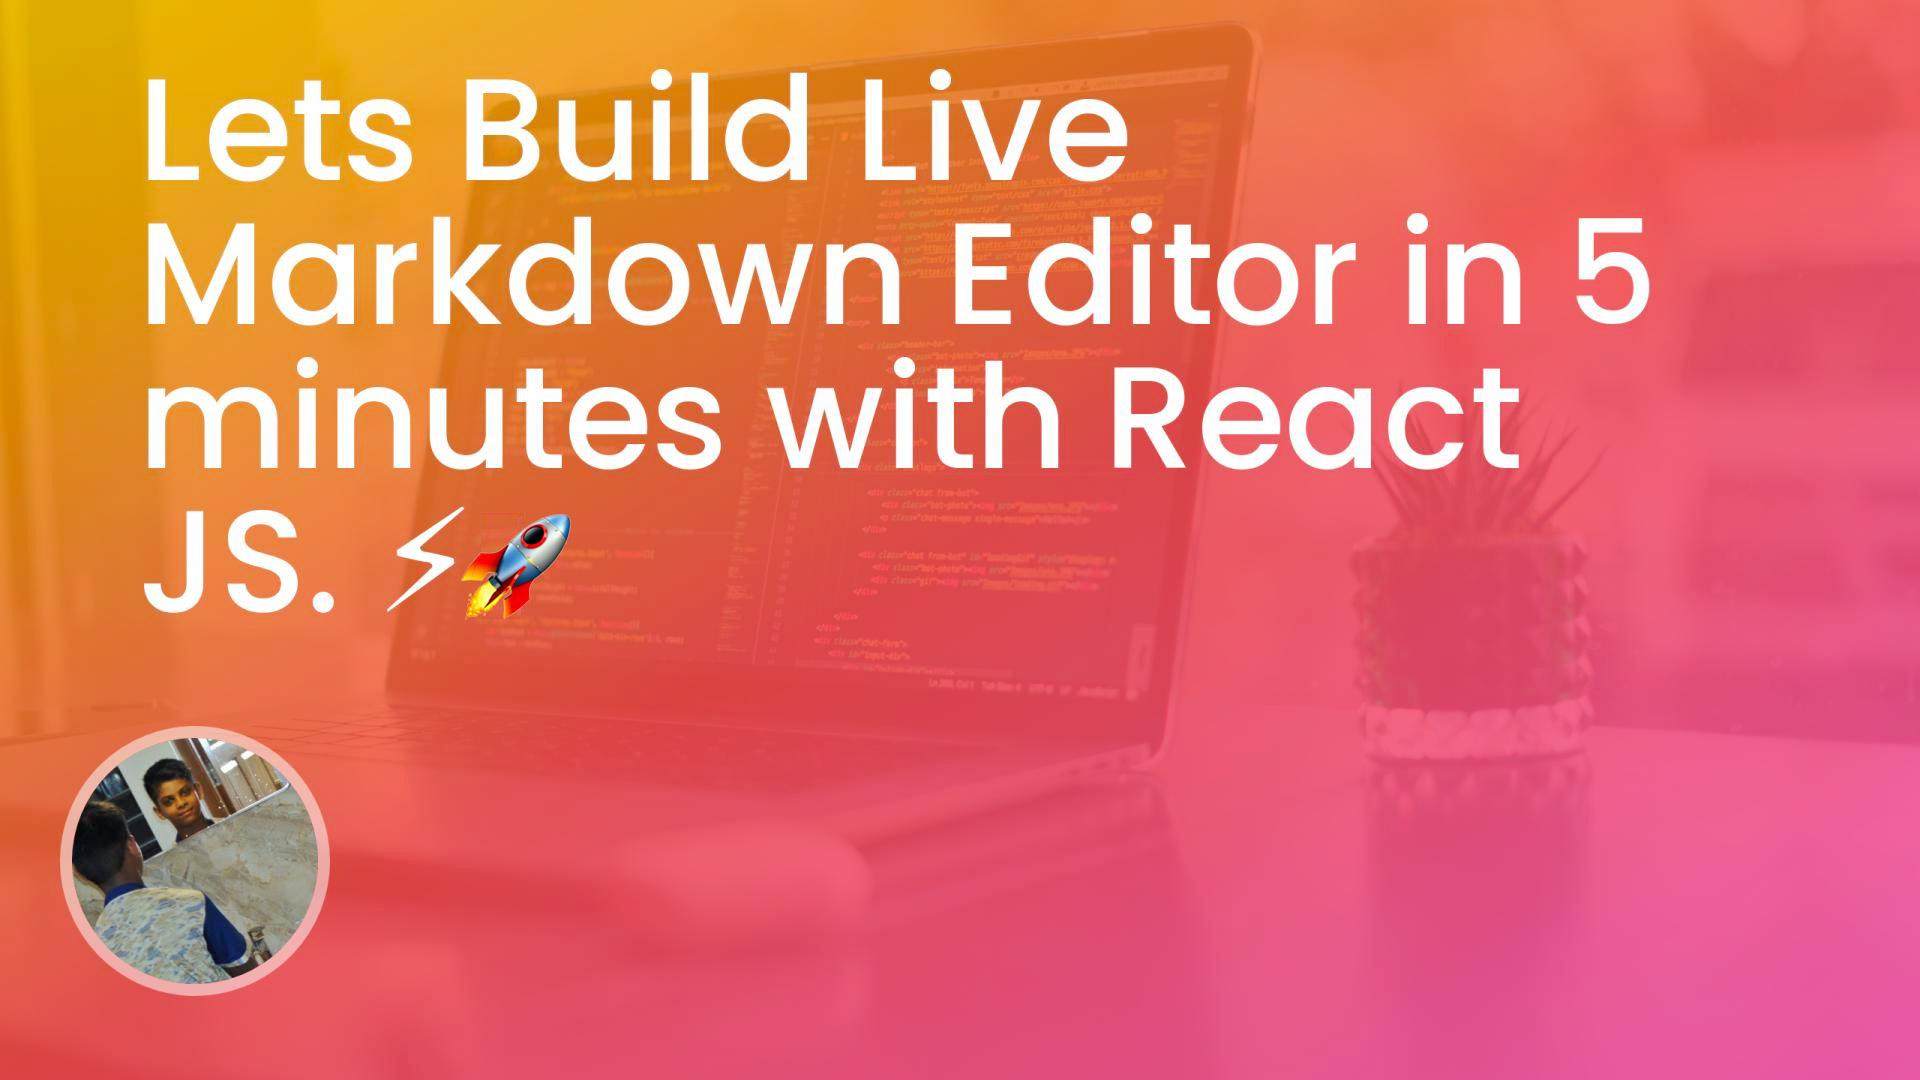 Lets Build Live Markdown Editor in 5 minutes with React JS. ⚡🚀